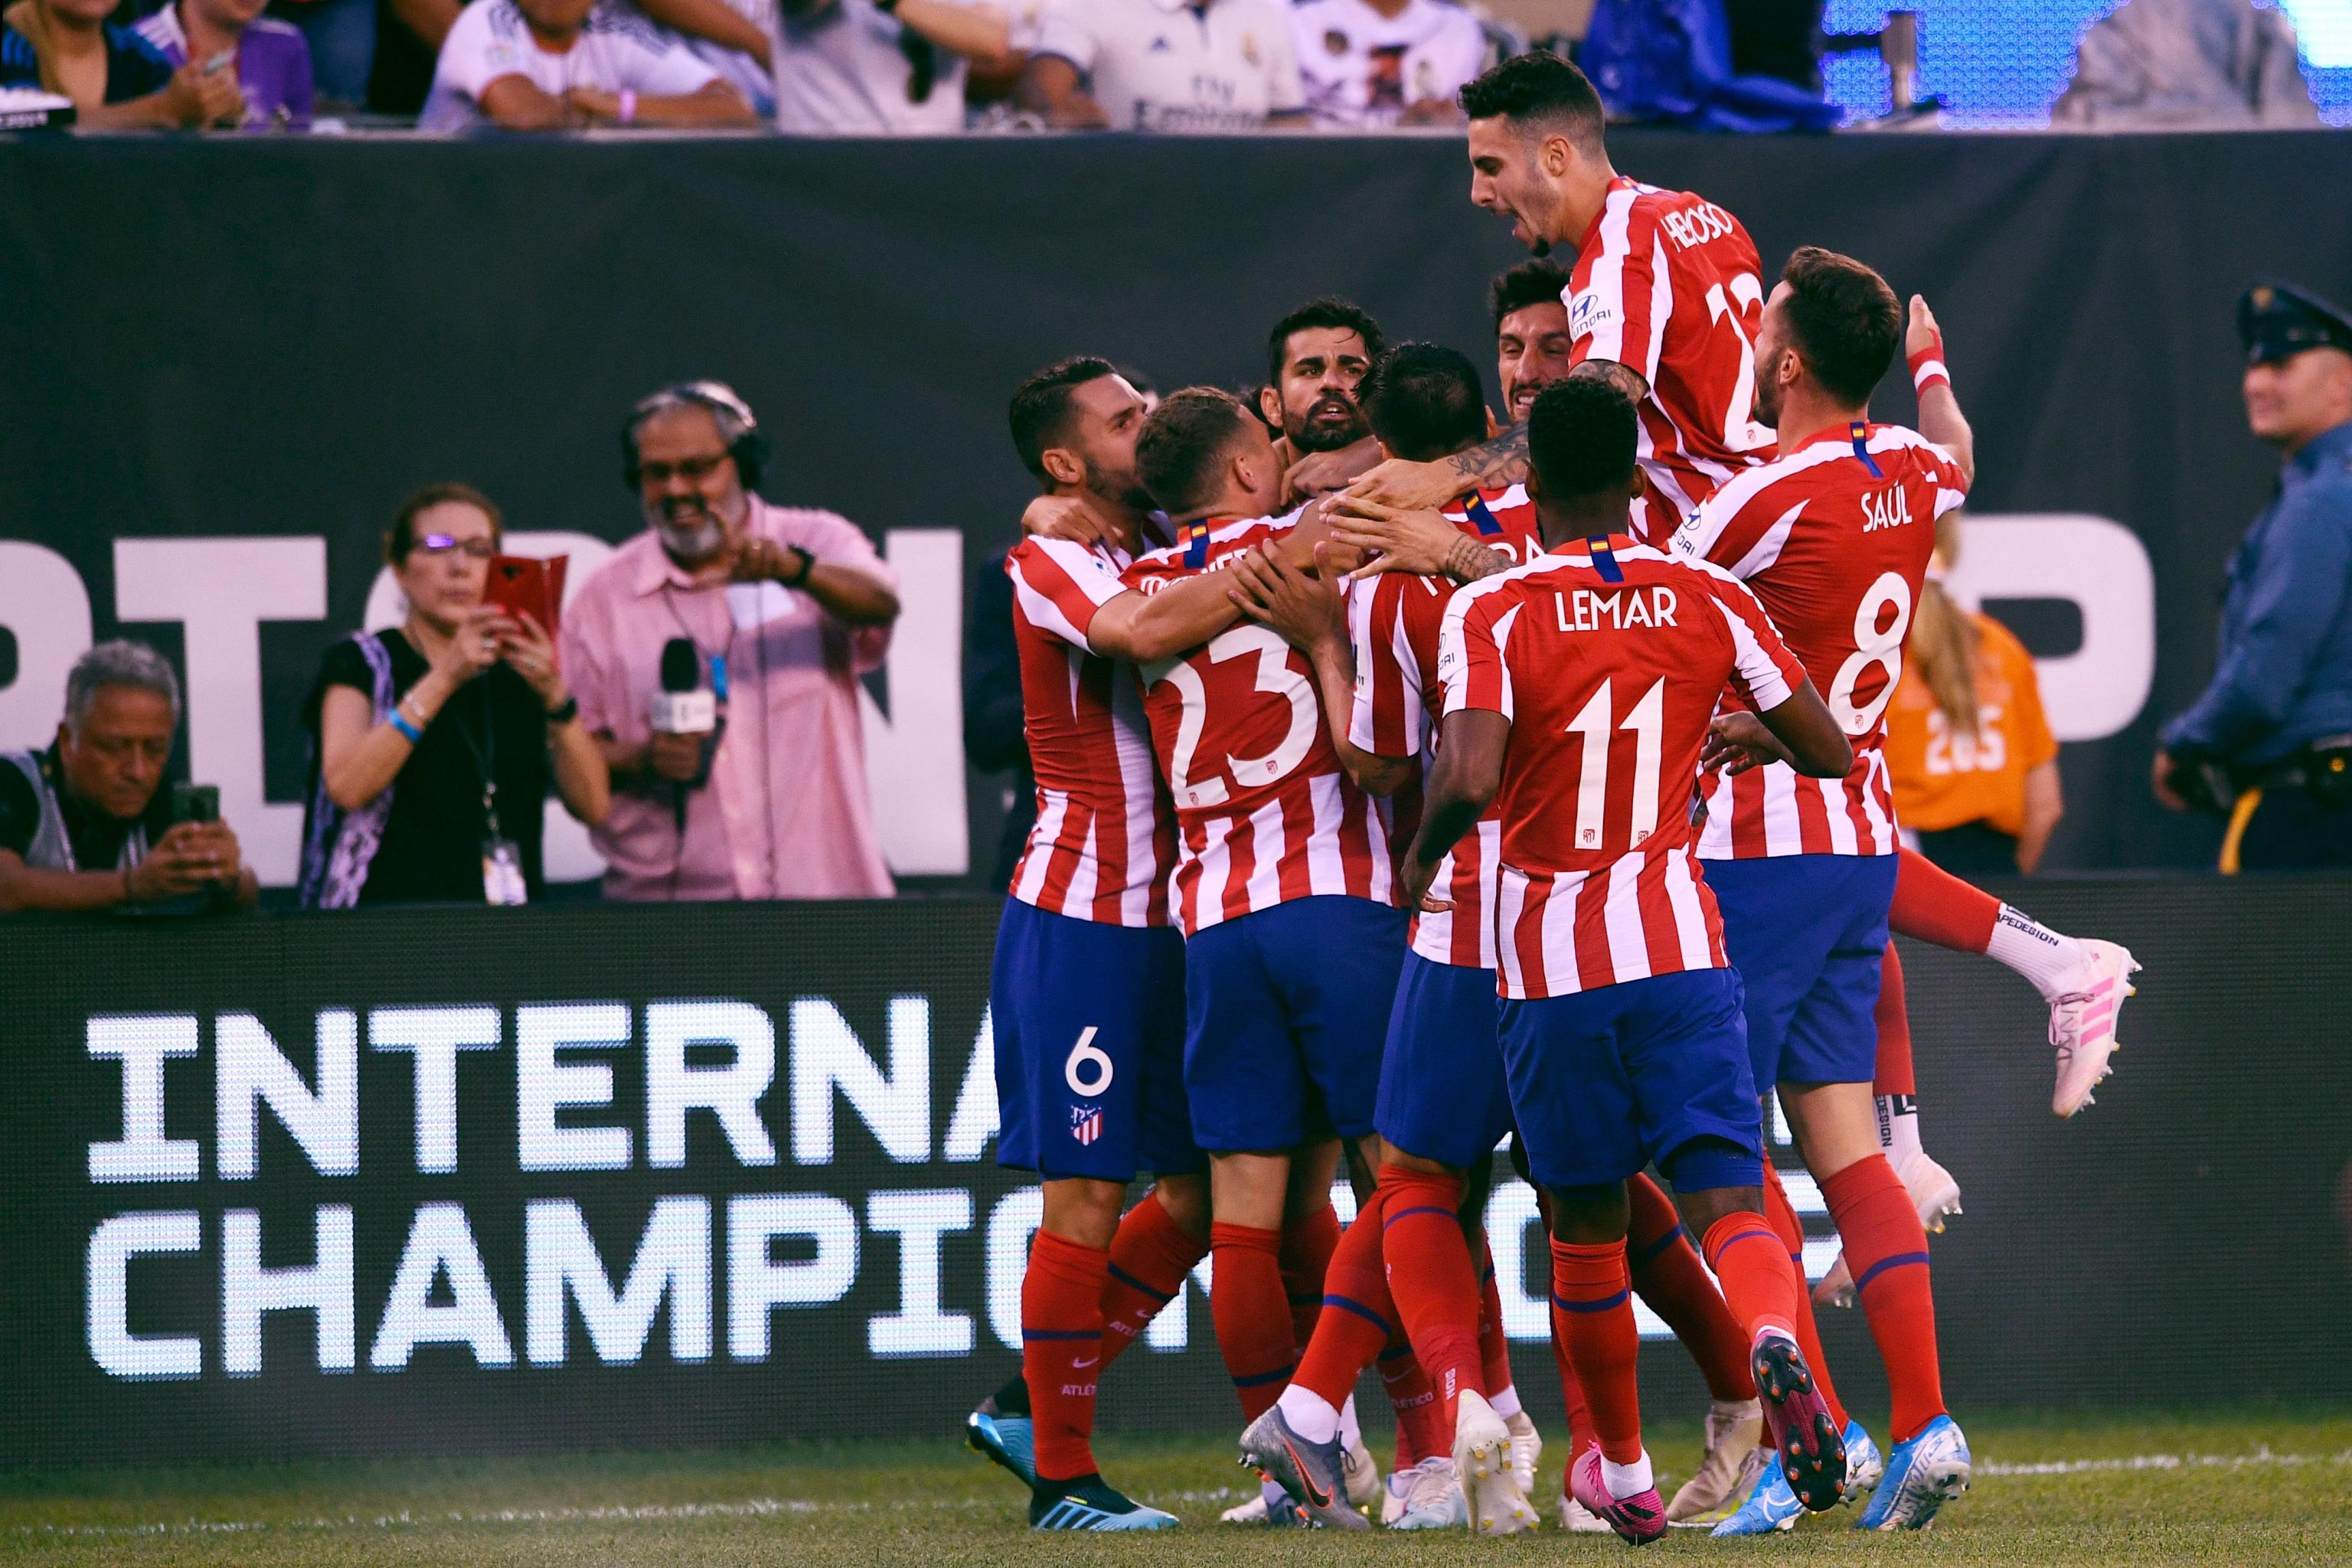 Diego Costa Scores 4 Goals Atletico Madrid Crush Real Madrid 7 3 In 2019 Icc Bleacher Report Latest News Videos And Highlights